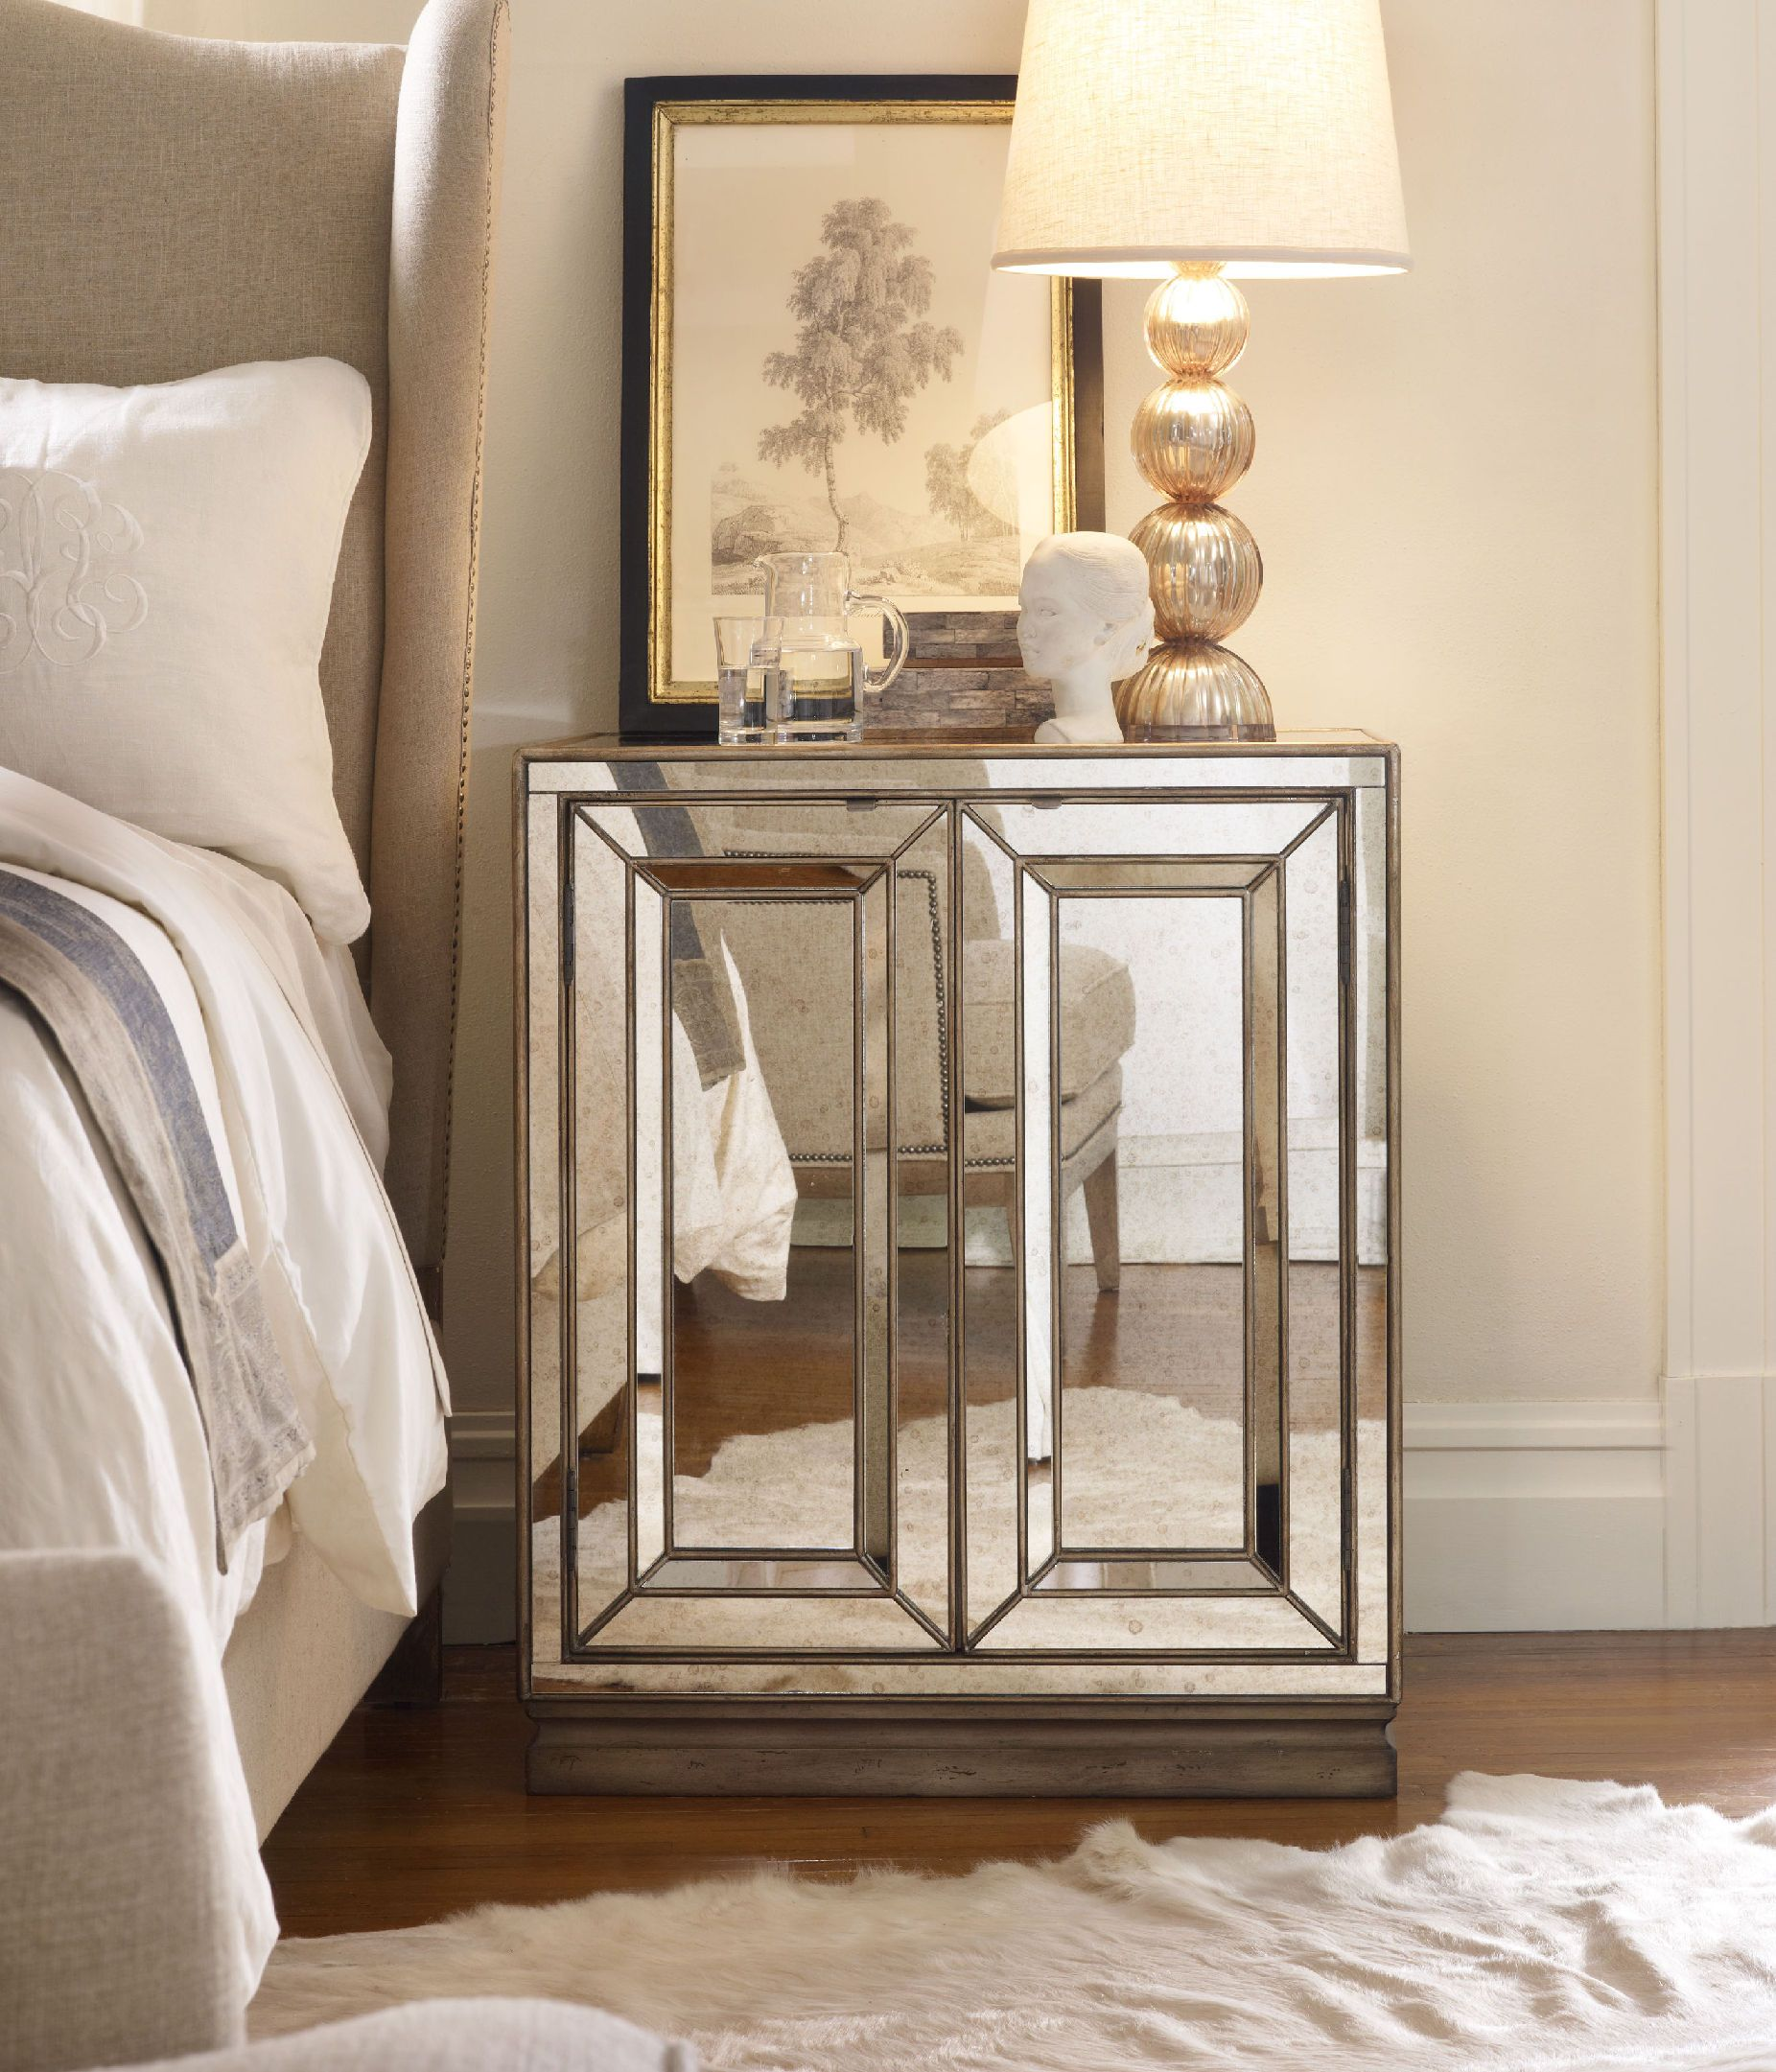 Cool Affordable Mirrored Nightstand Wonderful Affordable Mirrored Nightstand Catchy Interior Design Ideas with Affordable  Mirrored Nightstand Digitalliteracyco